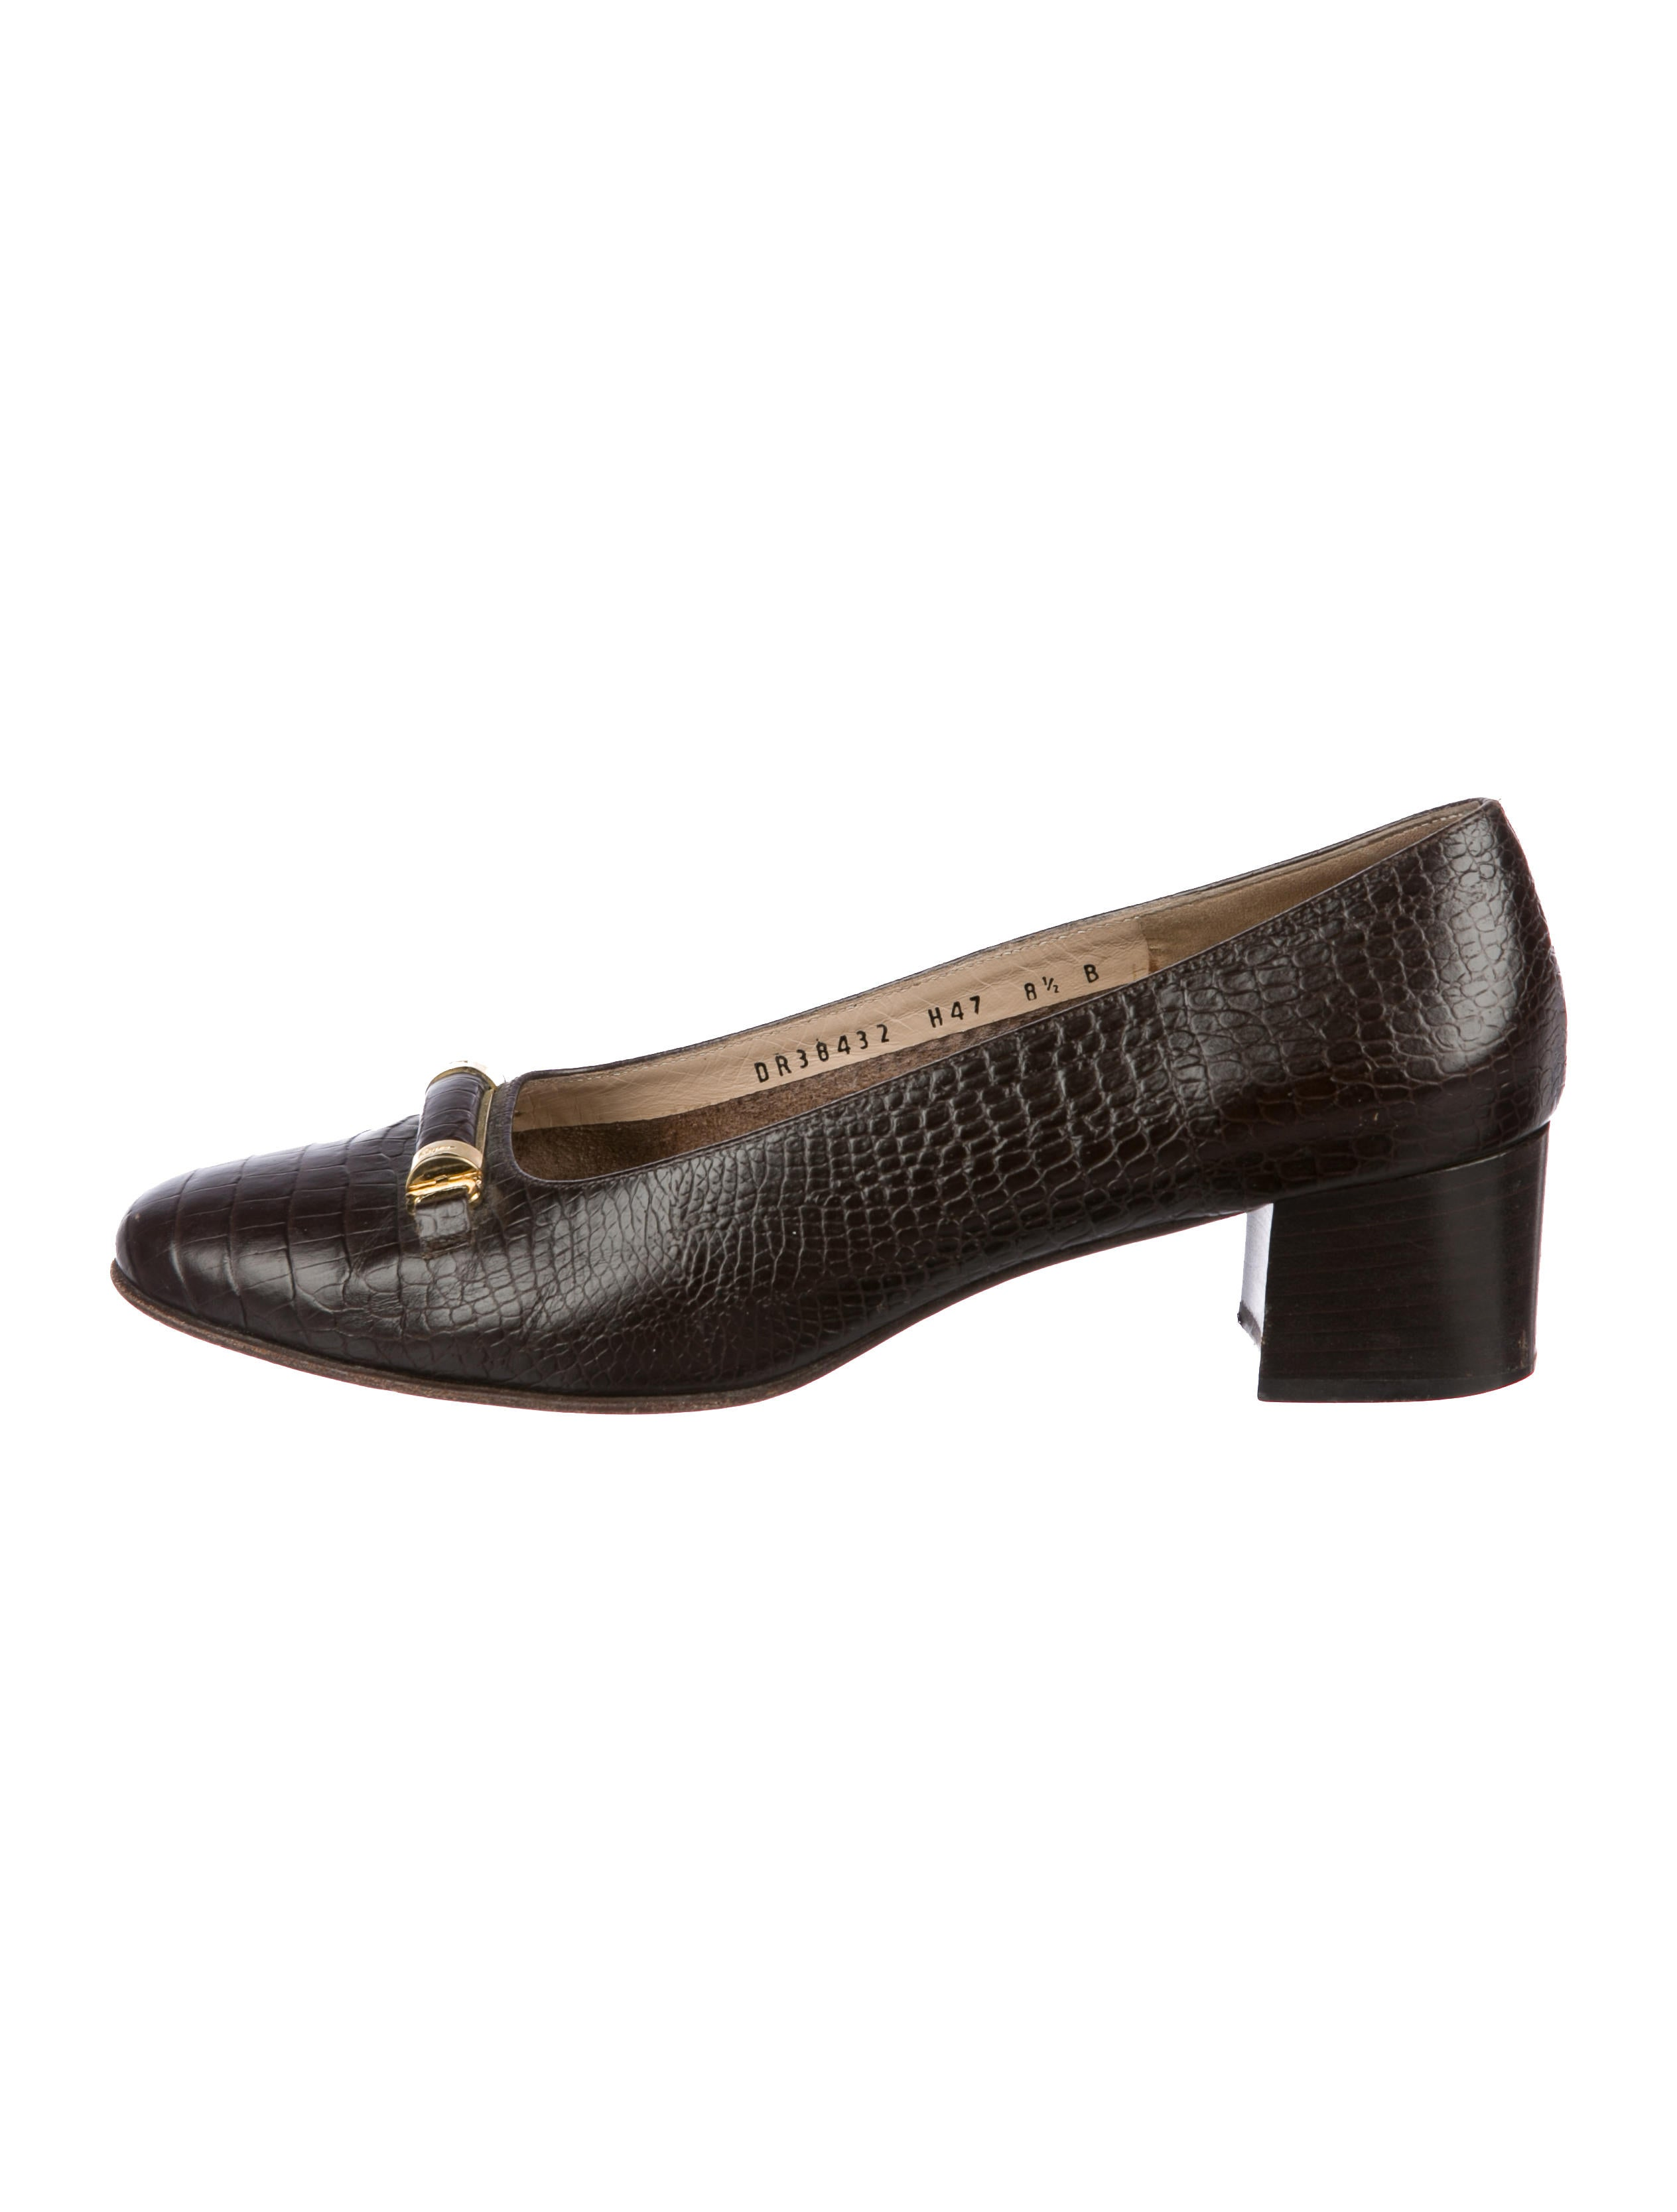 factory outlet online quality free shipping for sale Salvatore Ferragamo Embossed Square-Toe Loafers clearance online cheap sale limited edition tduCve2t